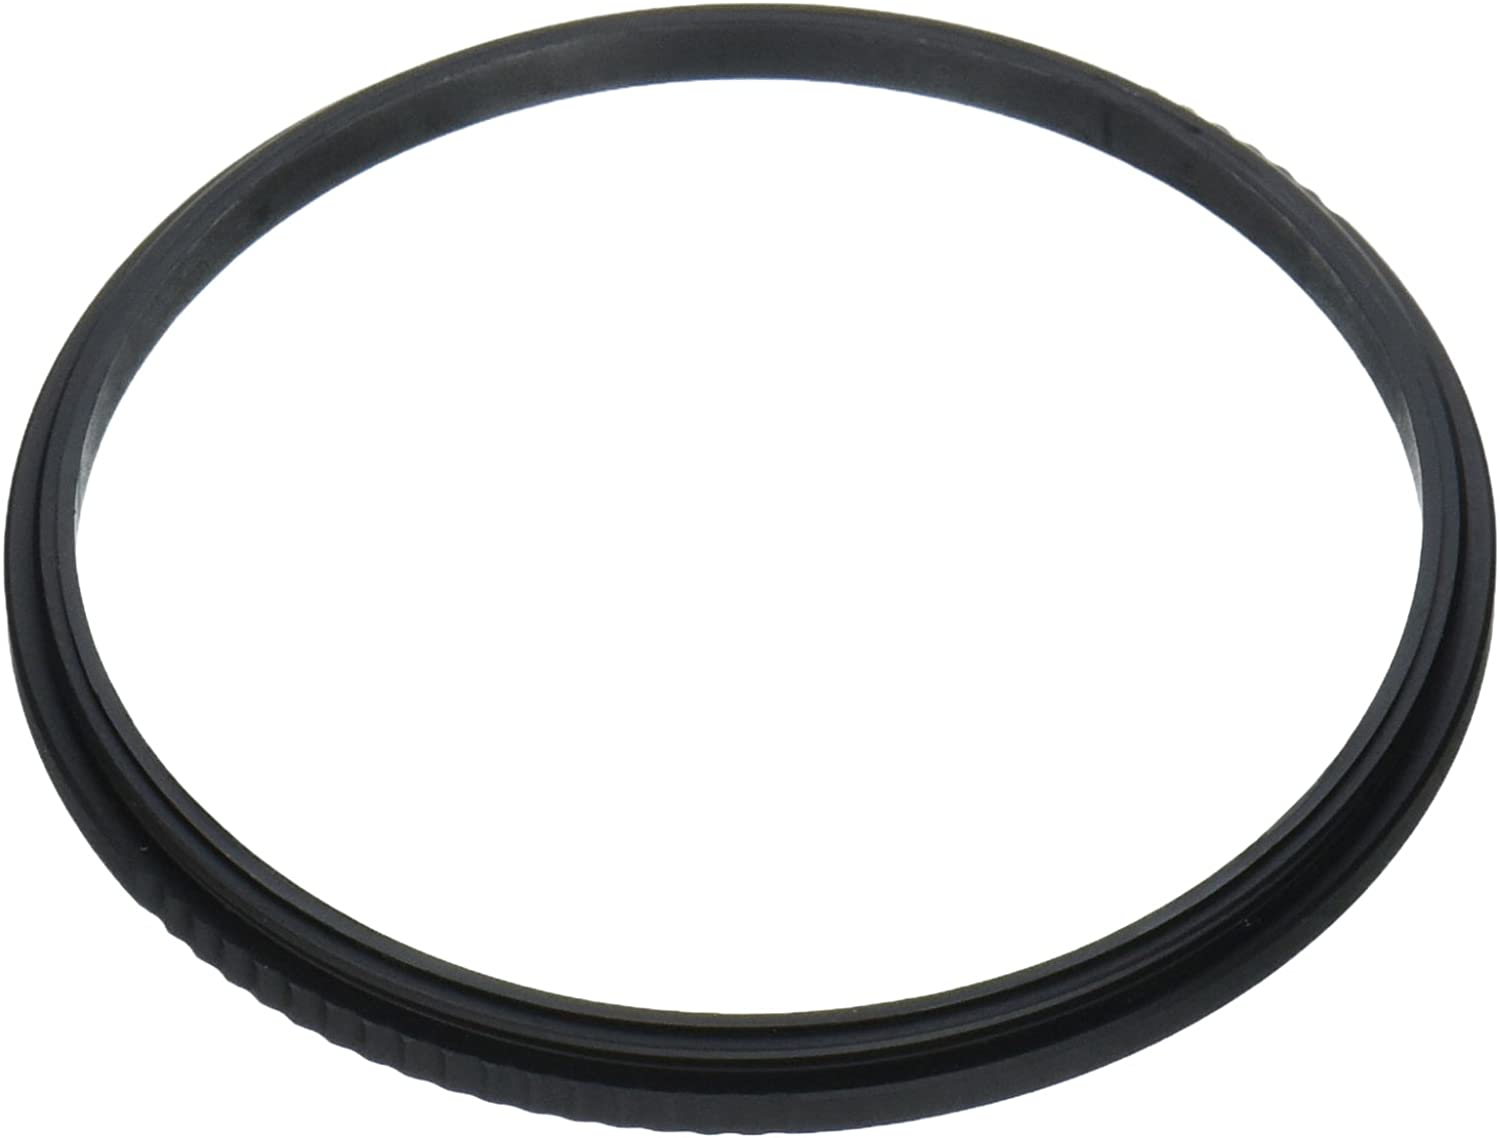 Xume MFXLA77 Lens Adapter 77mm, Black, Compact